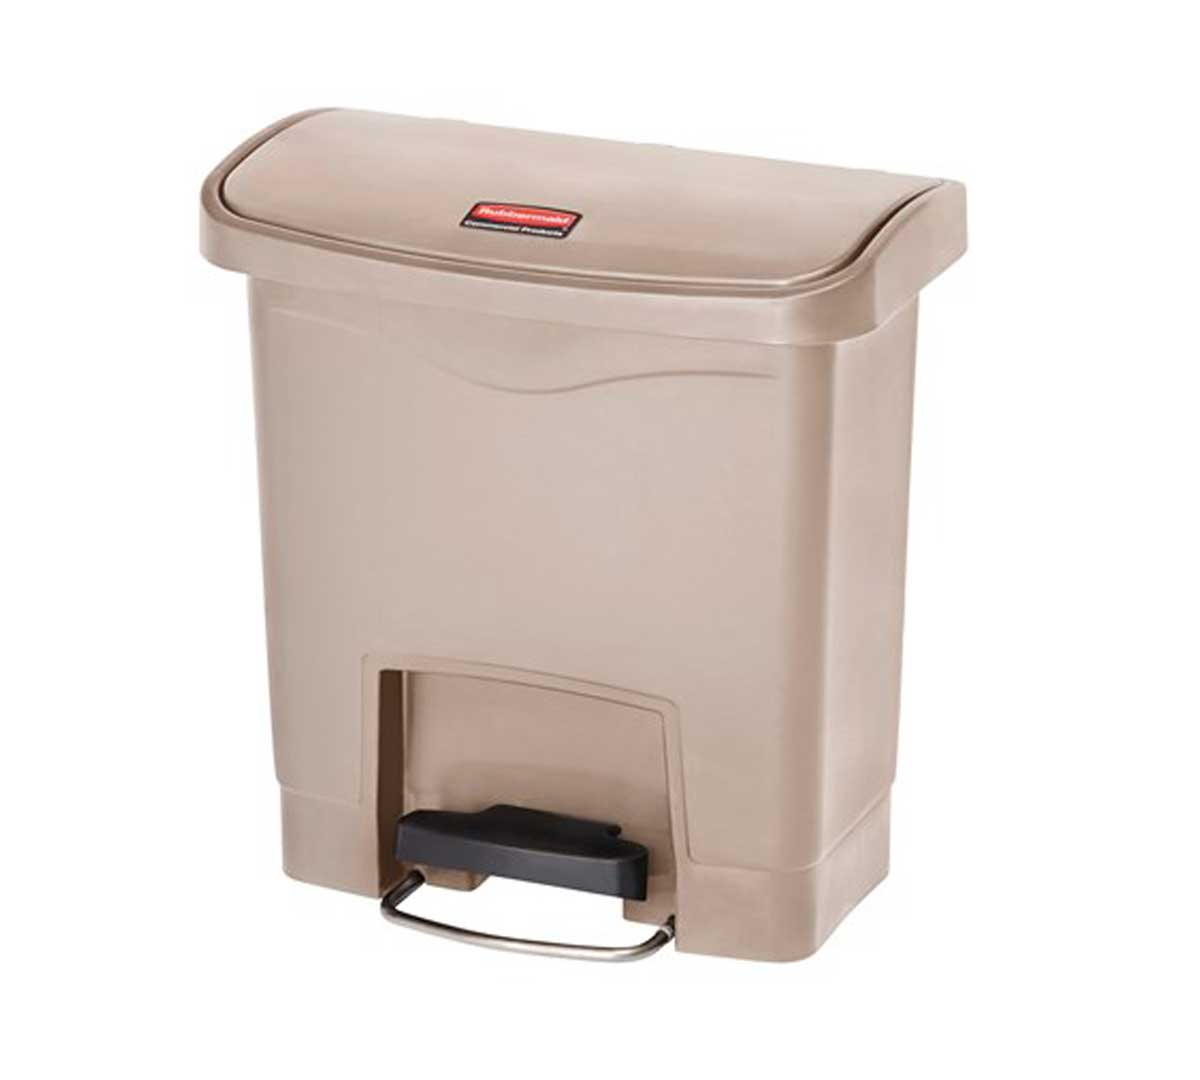 Dimensiones Contenedor Basura Rubbermaid Slim Jim Frontal